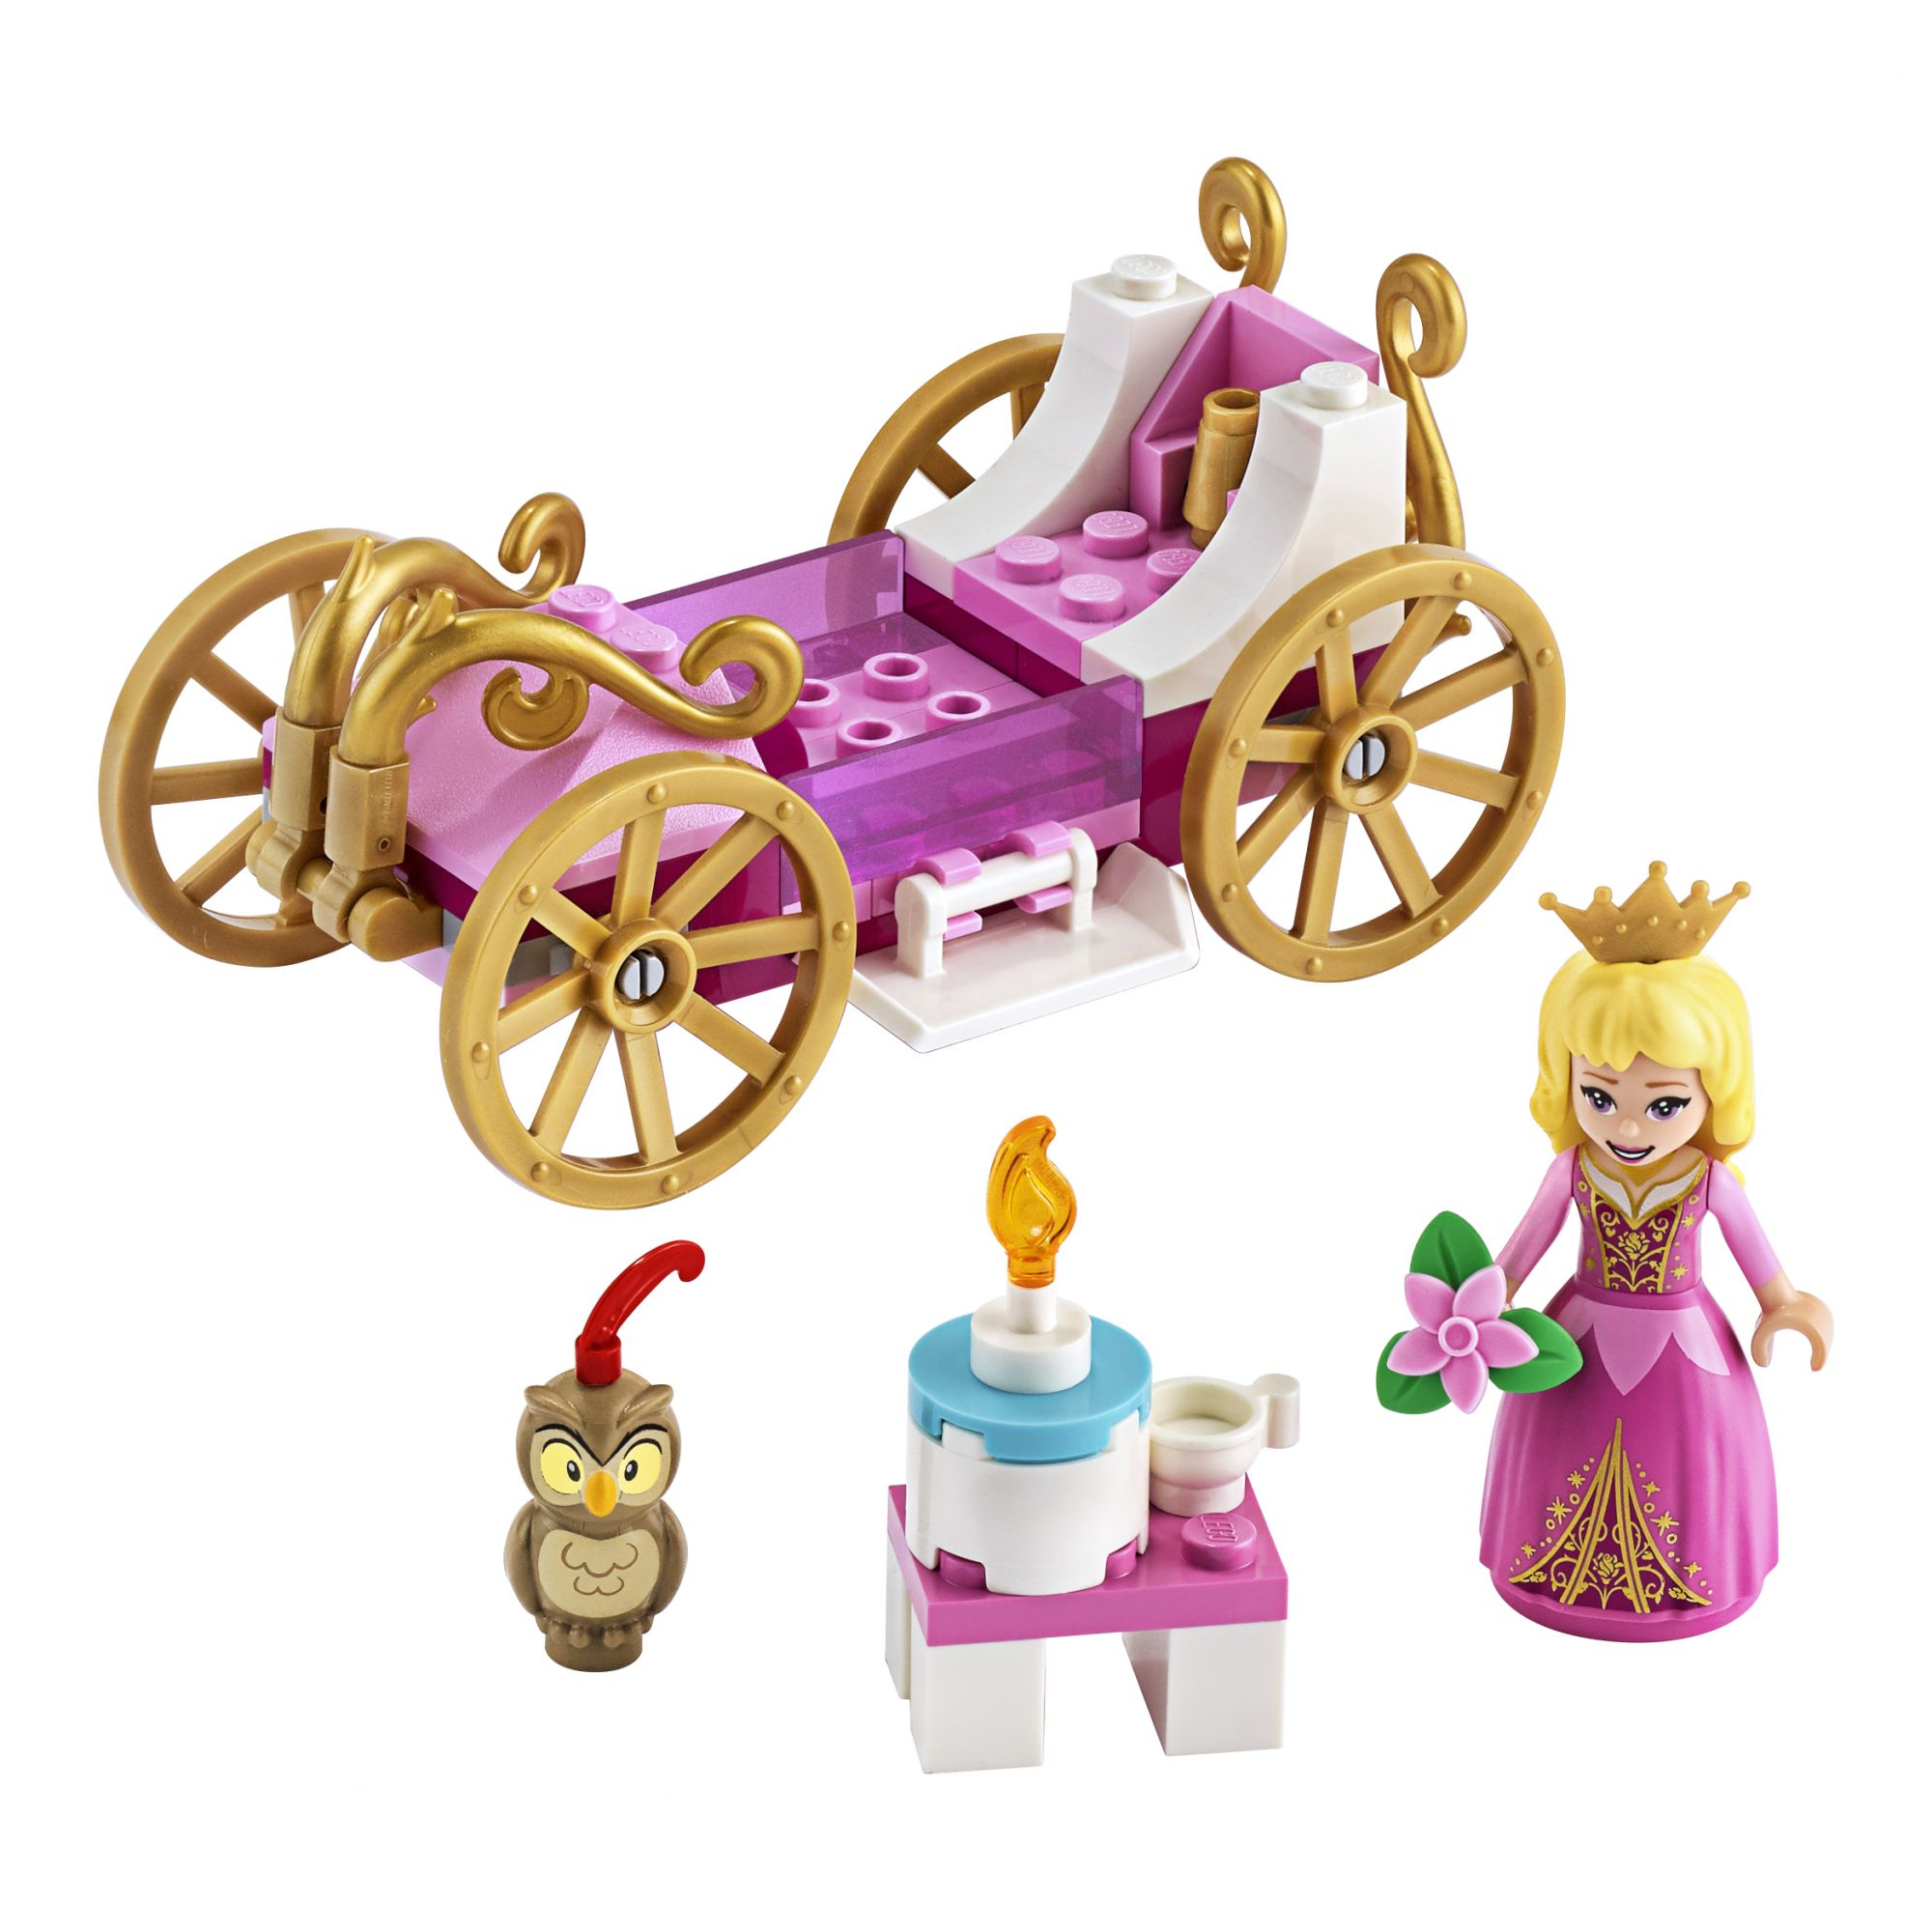 LEGO Disney Princess La carrozza reale di Aurora - 43173